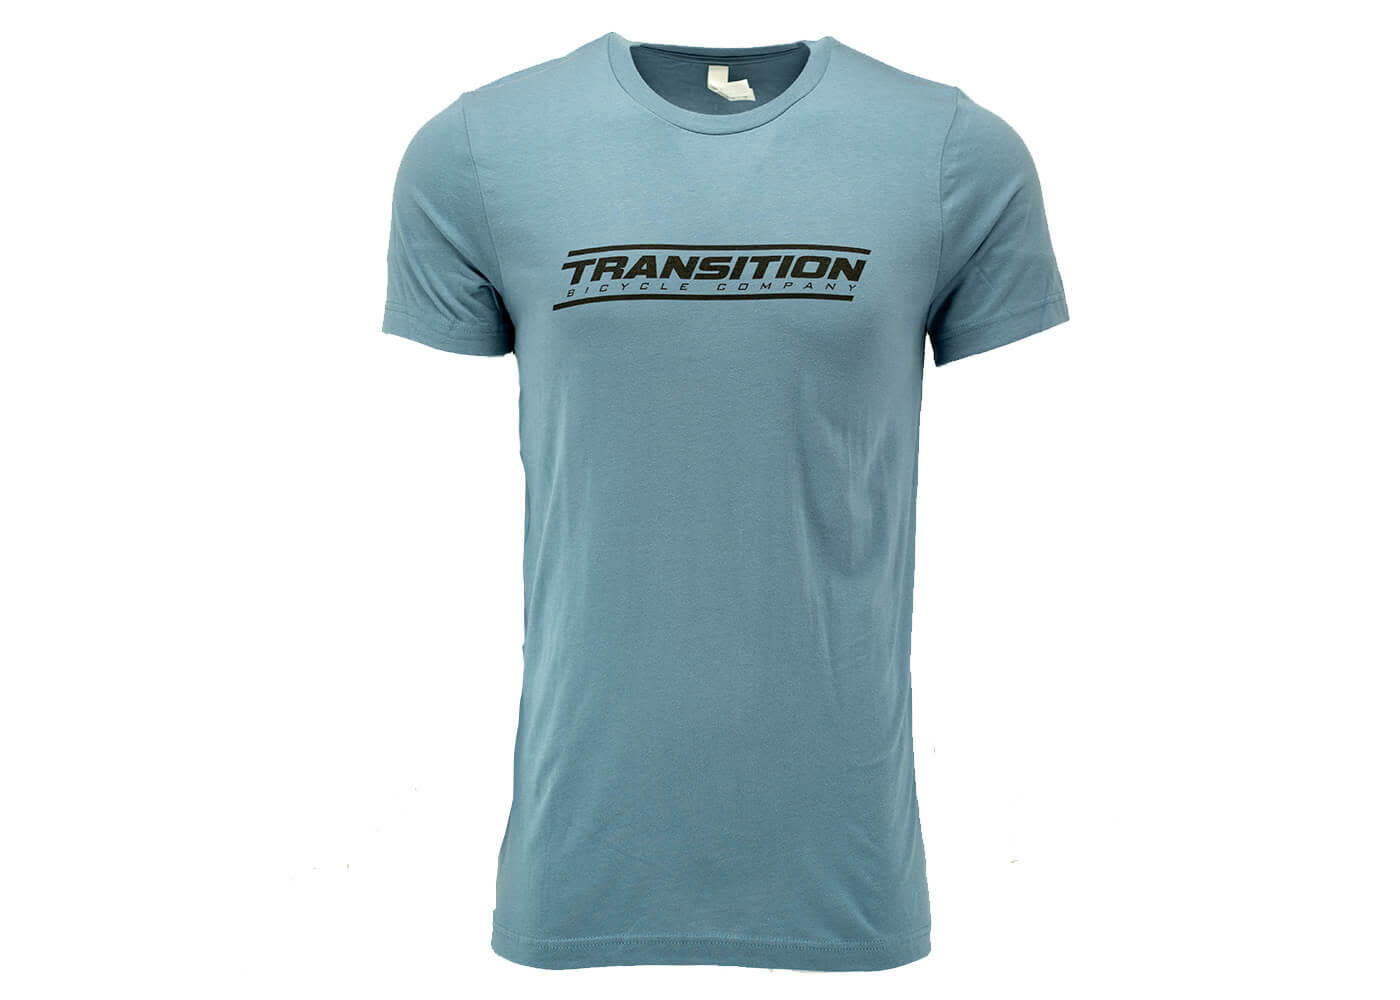 Transition T-Shirt: Transition Logo (Steel Blue, Medium)